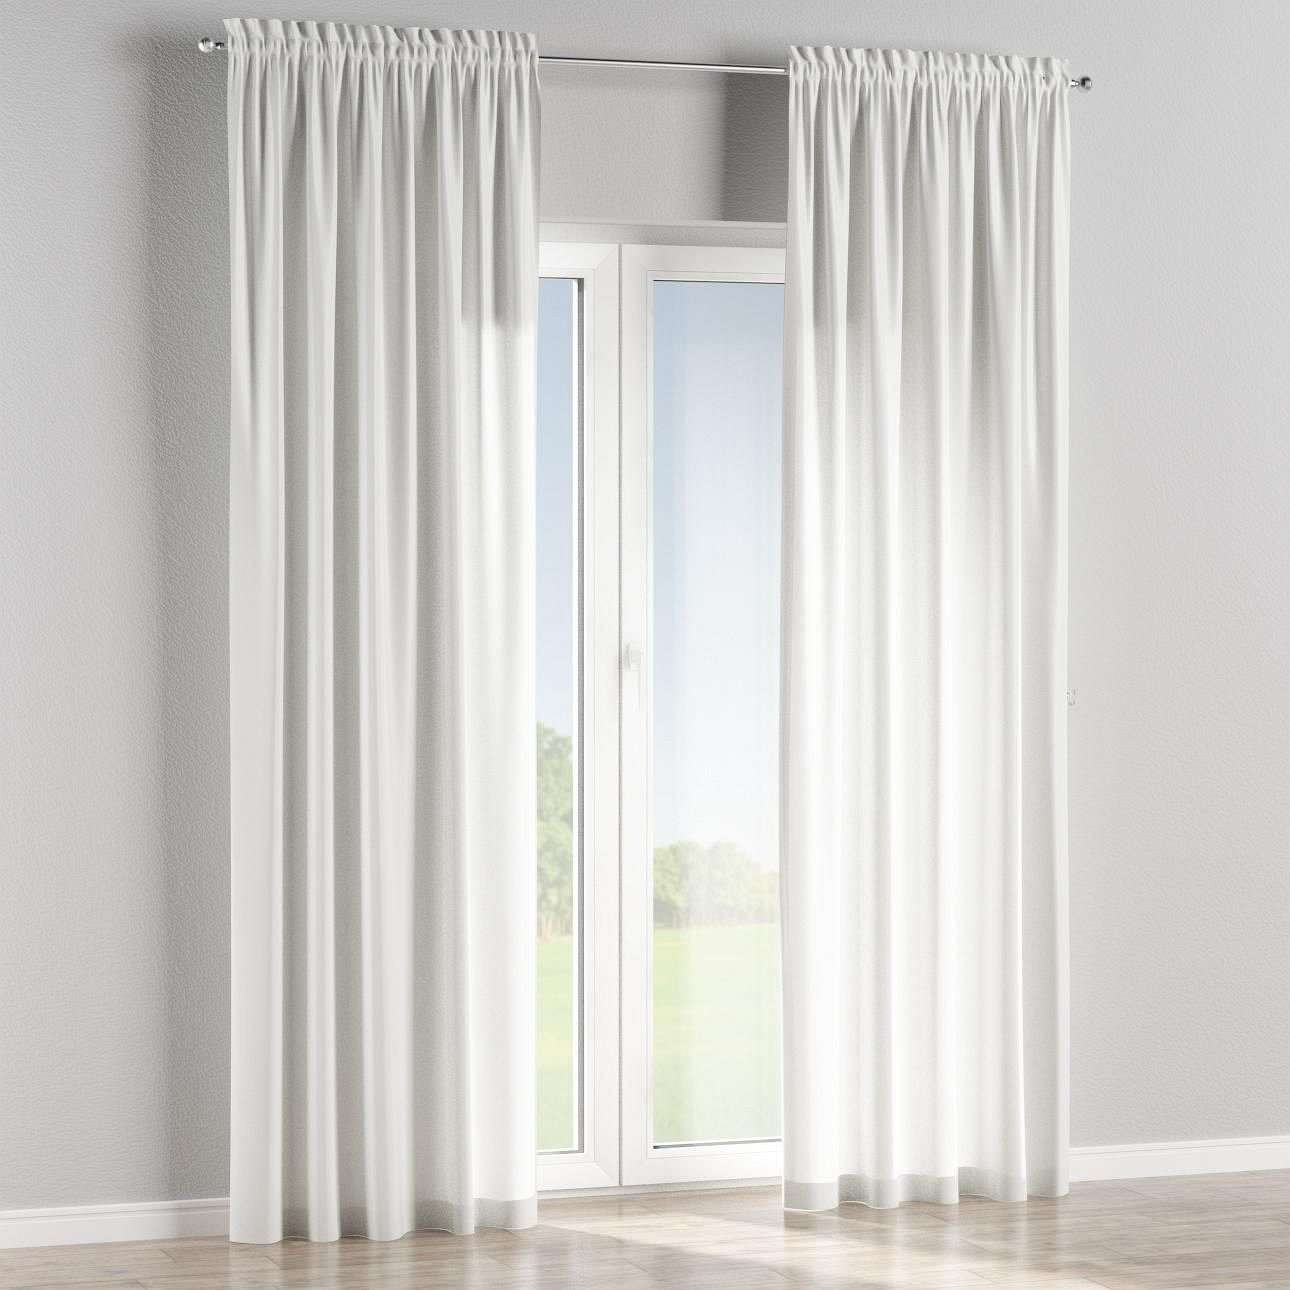 Slot and frill curtains in collection Venice, fabric: 140-53